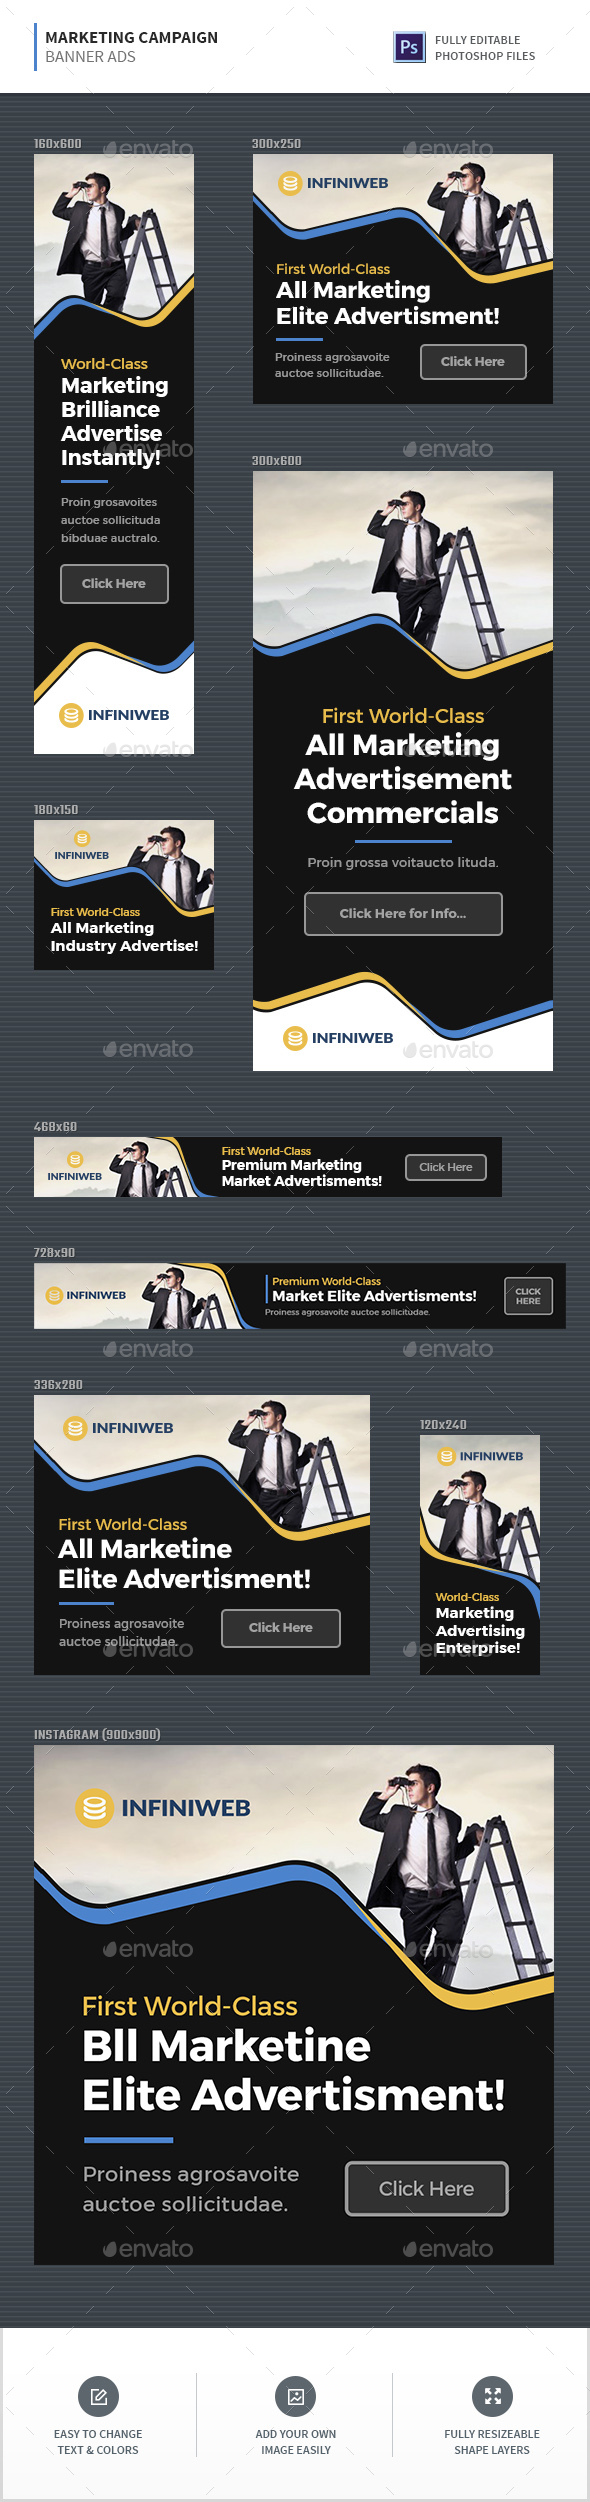 Marketing Campaign Banners - Banners & Ads Web Elements